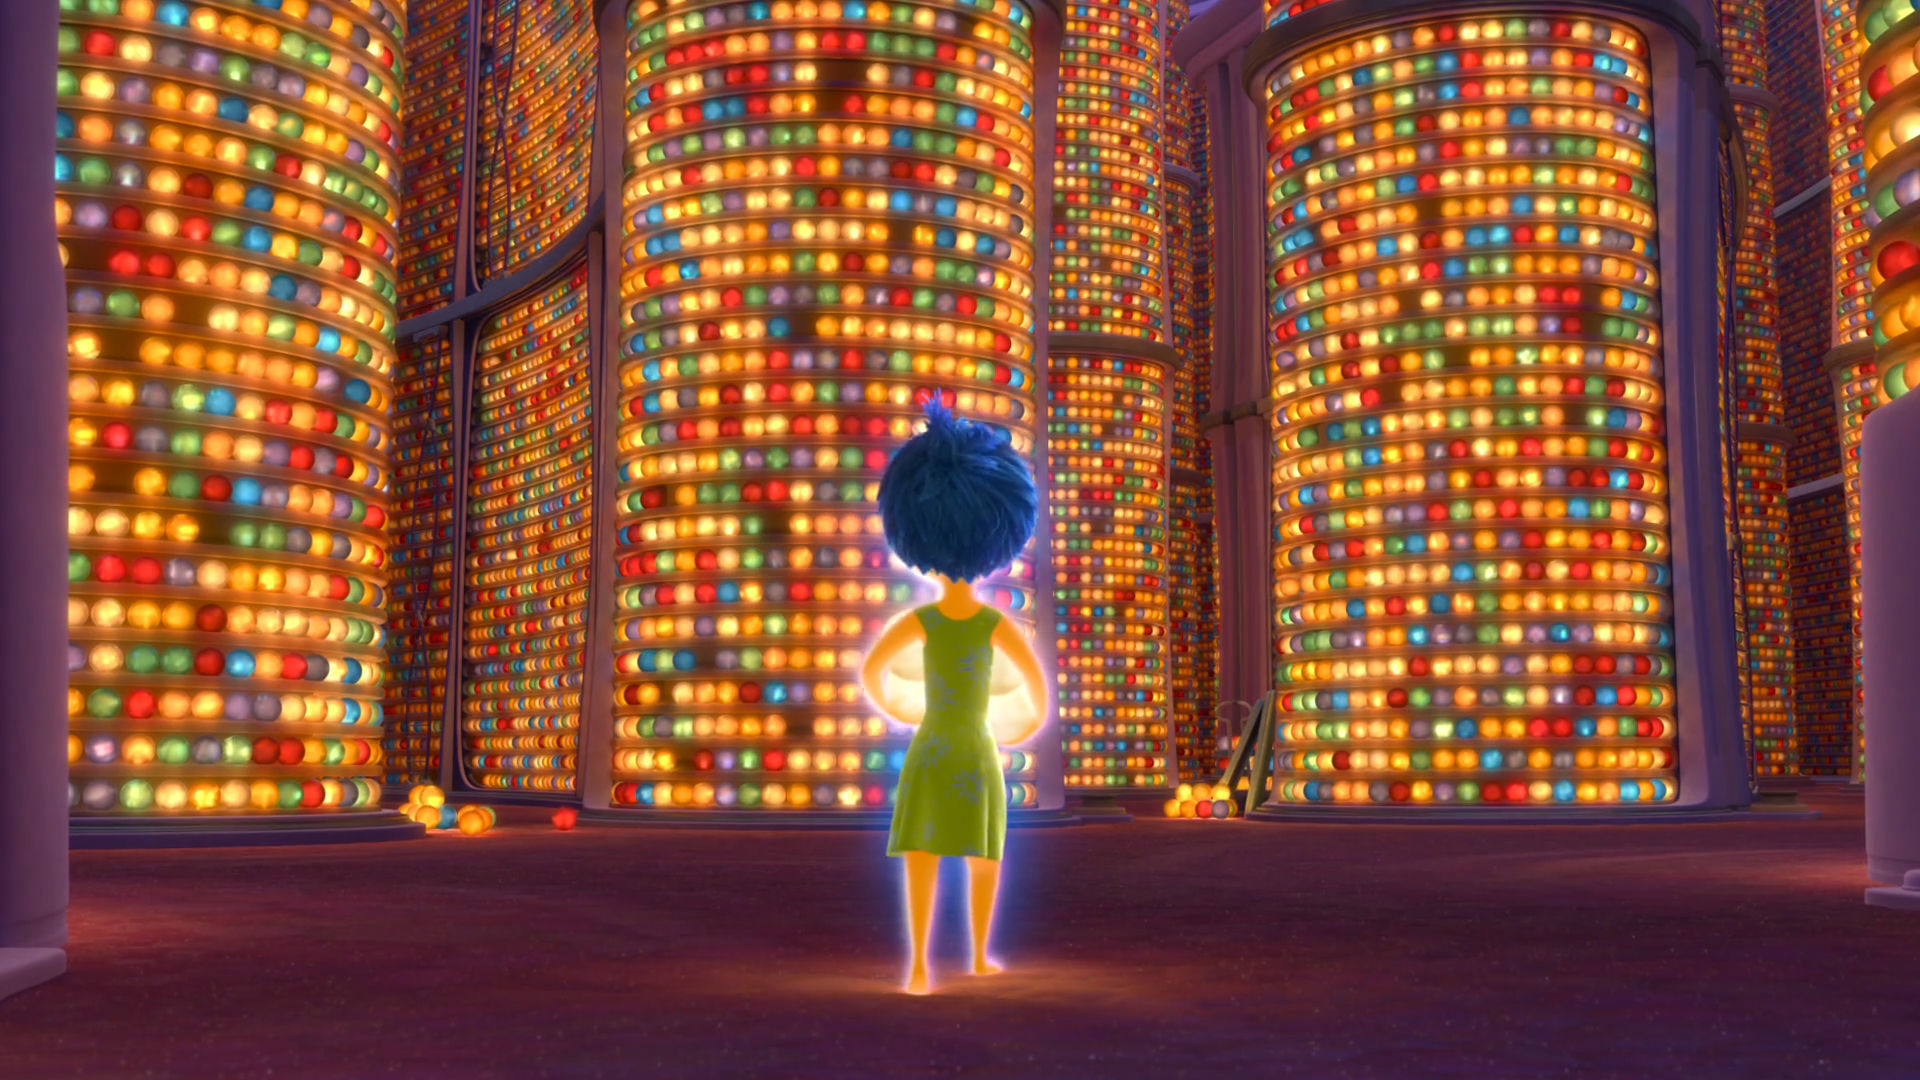 Del Revés (Inside out) - Memoria a largo plazo